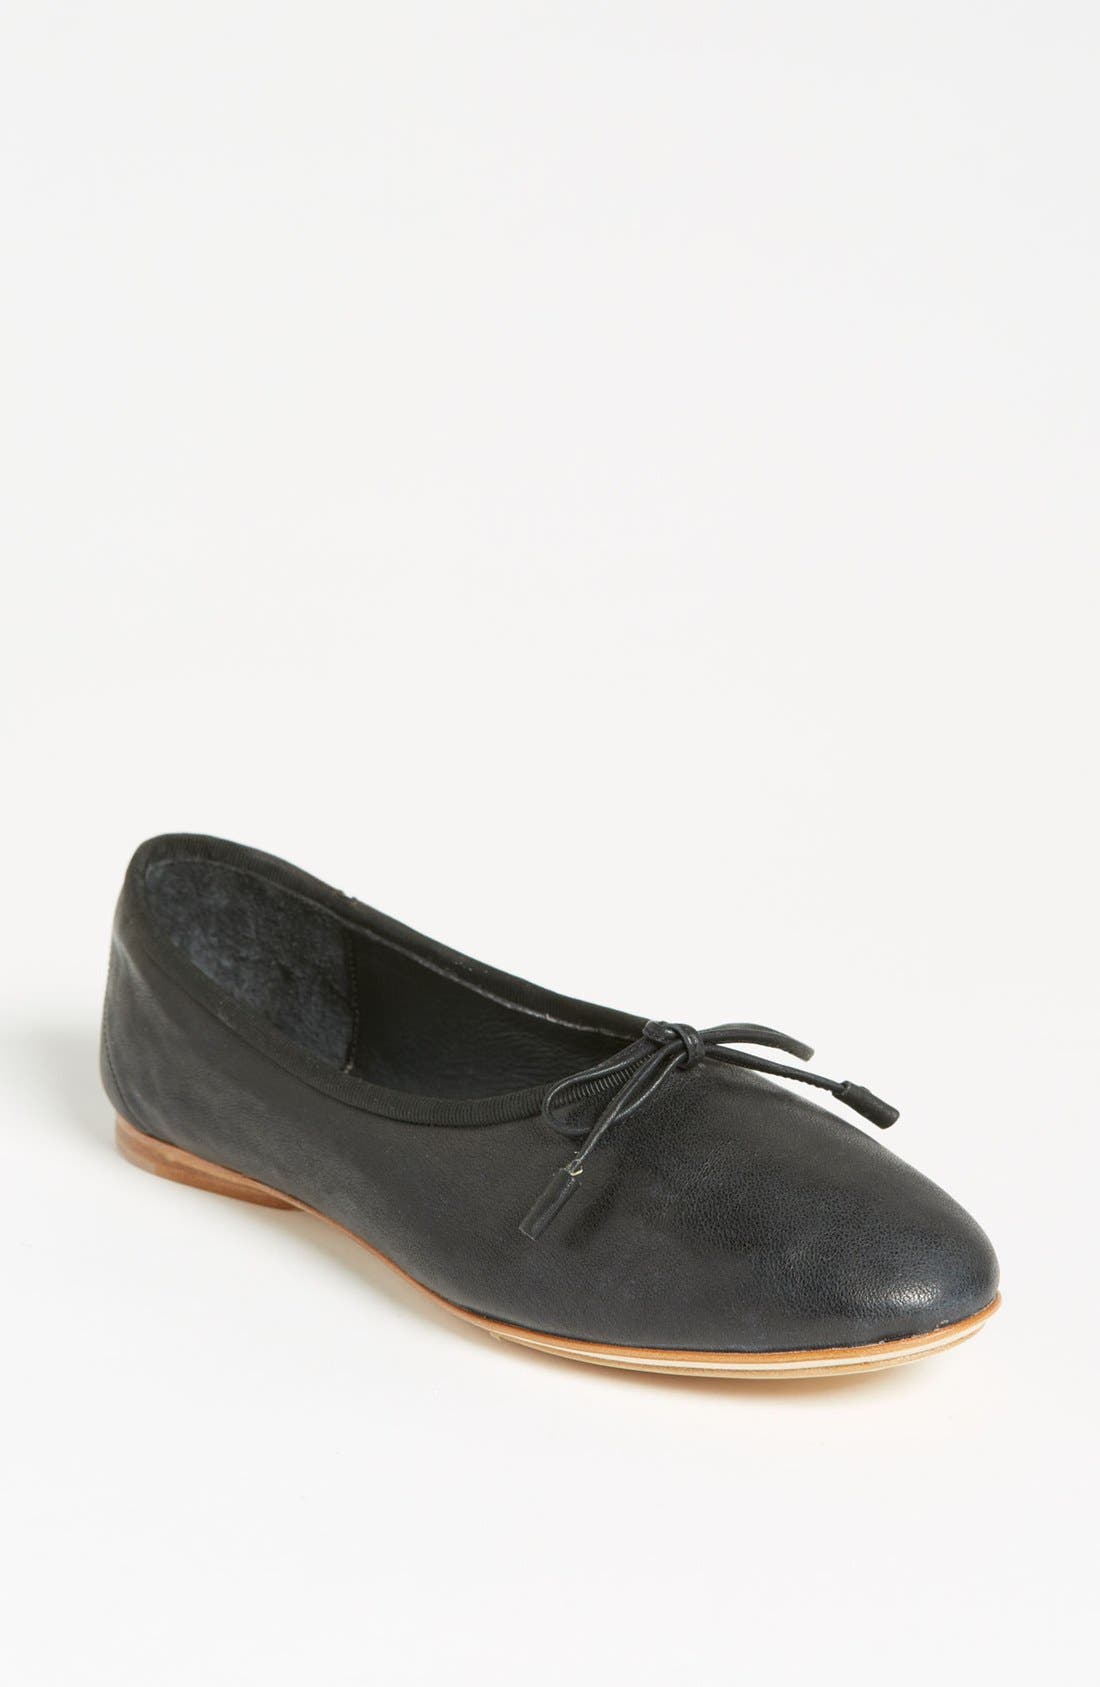 Alternate Image 1 Selected - rag & bone 'Windsor' Skimmer Flat